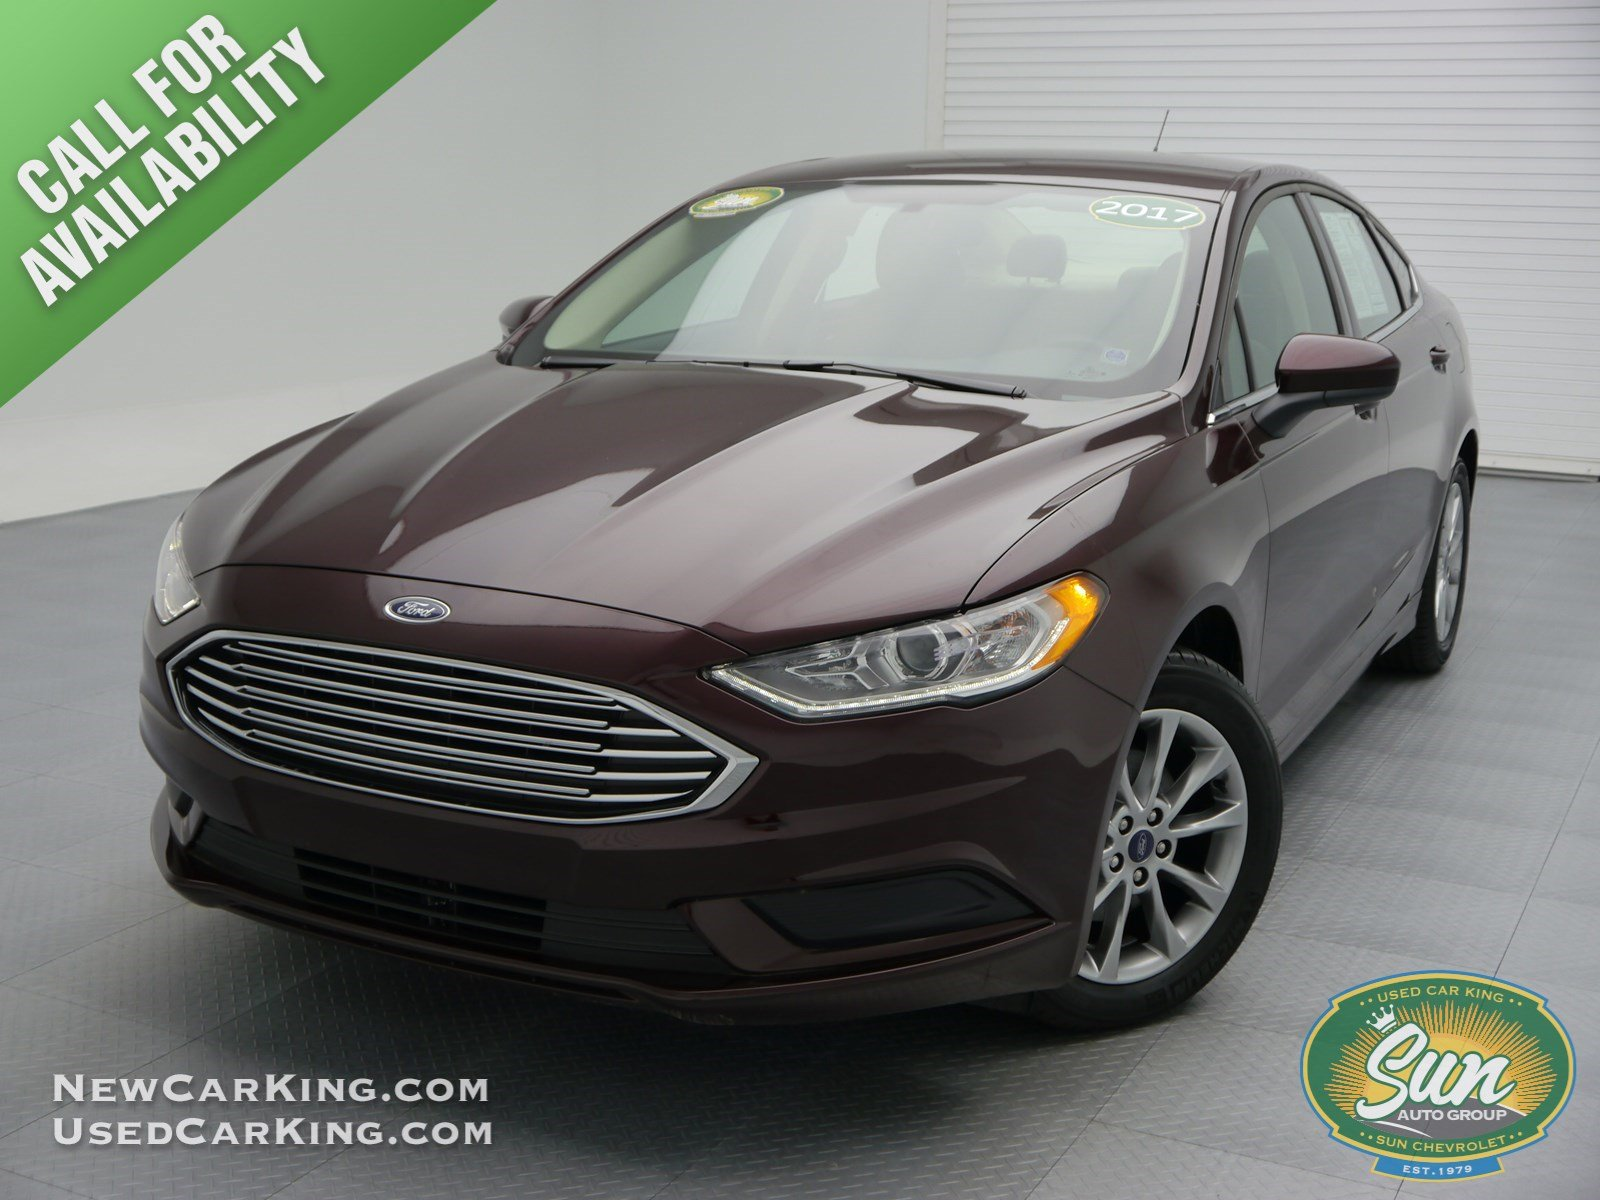 Pre Owned 2017 Ford Fusion SE 4dr Car in Chittenango W